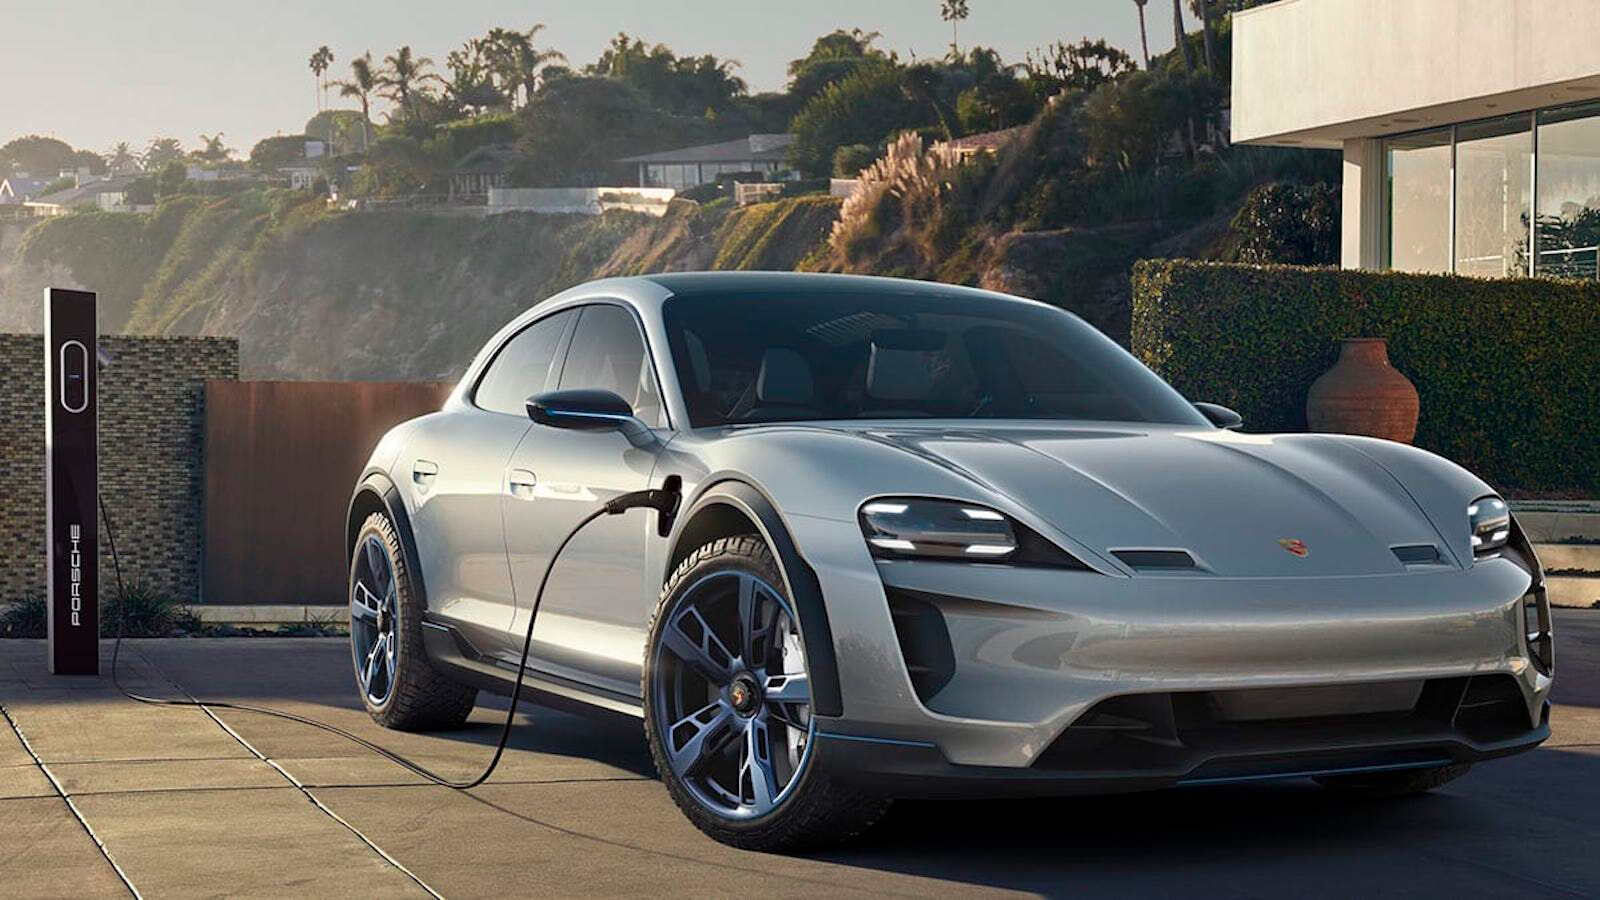 E-Tron Saloon Will Hit the Market by 2020